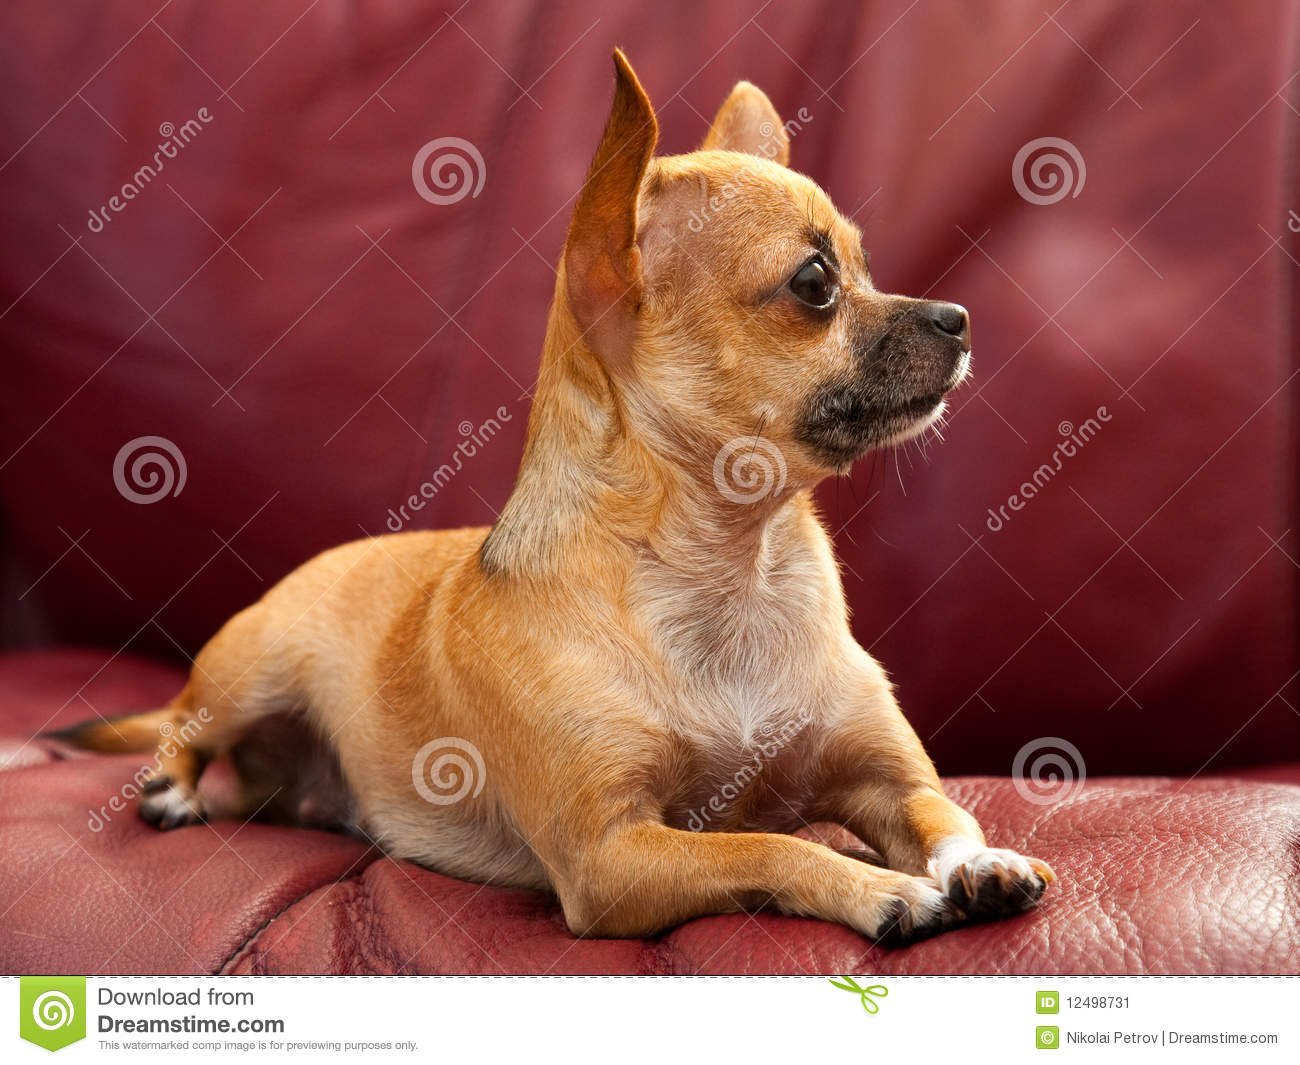 pet dog sofa how to wash microfiber cushion covers cute tiny chihuahua on a red couch stock image - ...